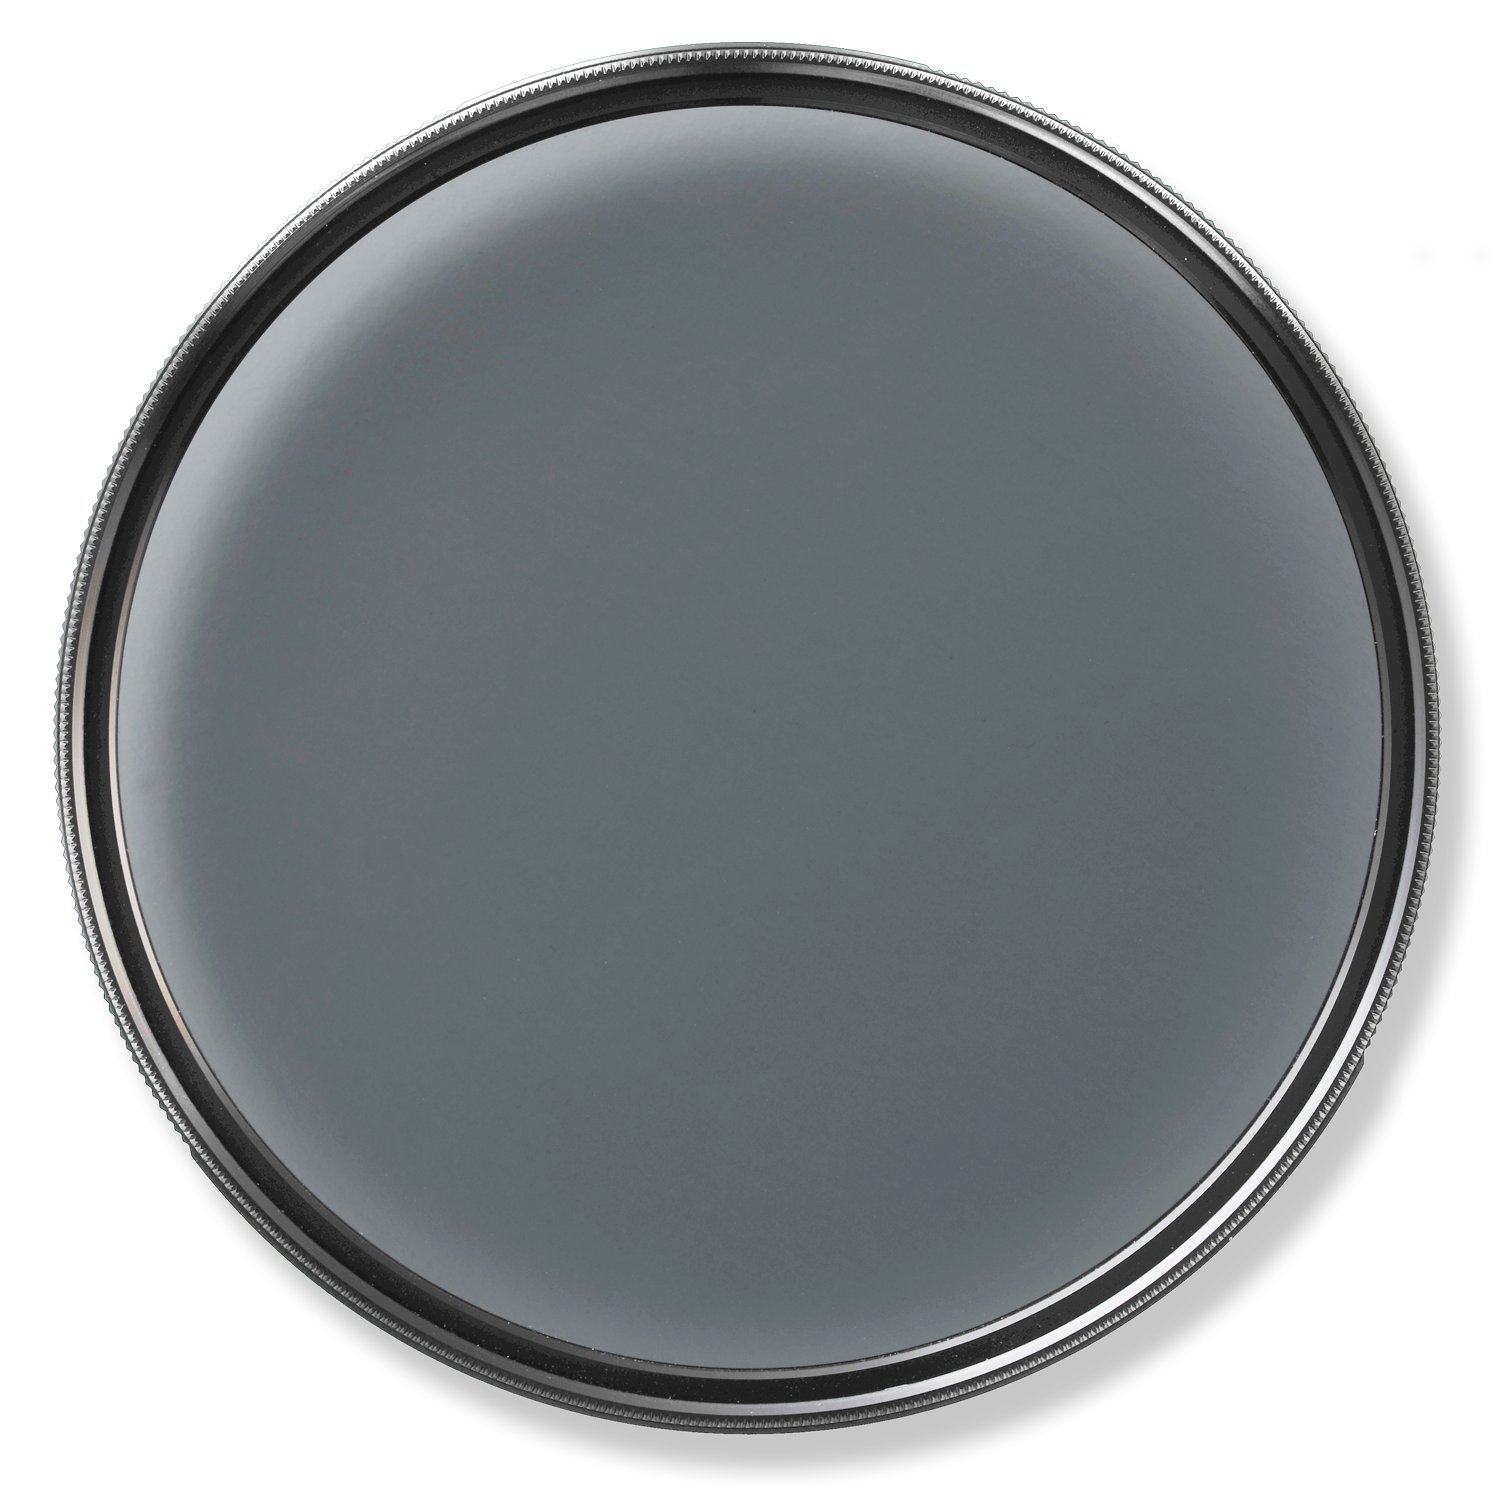 Zeiss T POL Filter, Diameter: 77 mm by Zeiss